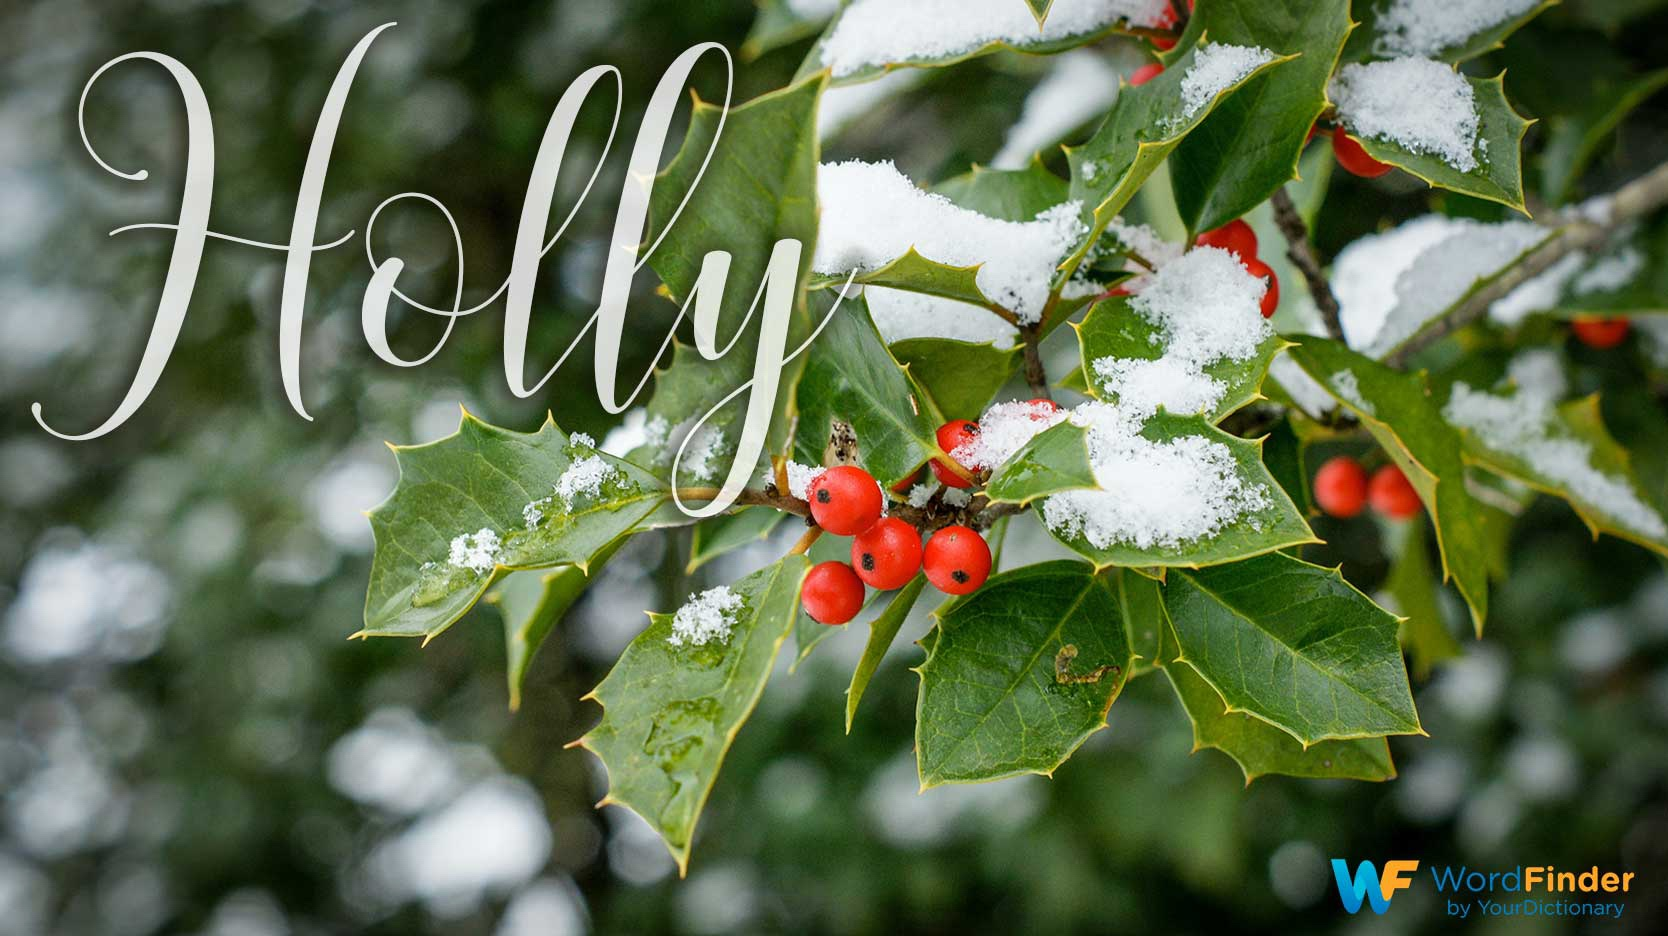 christmas word meaning holly